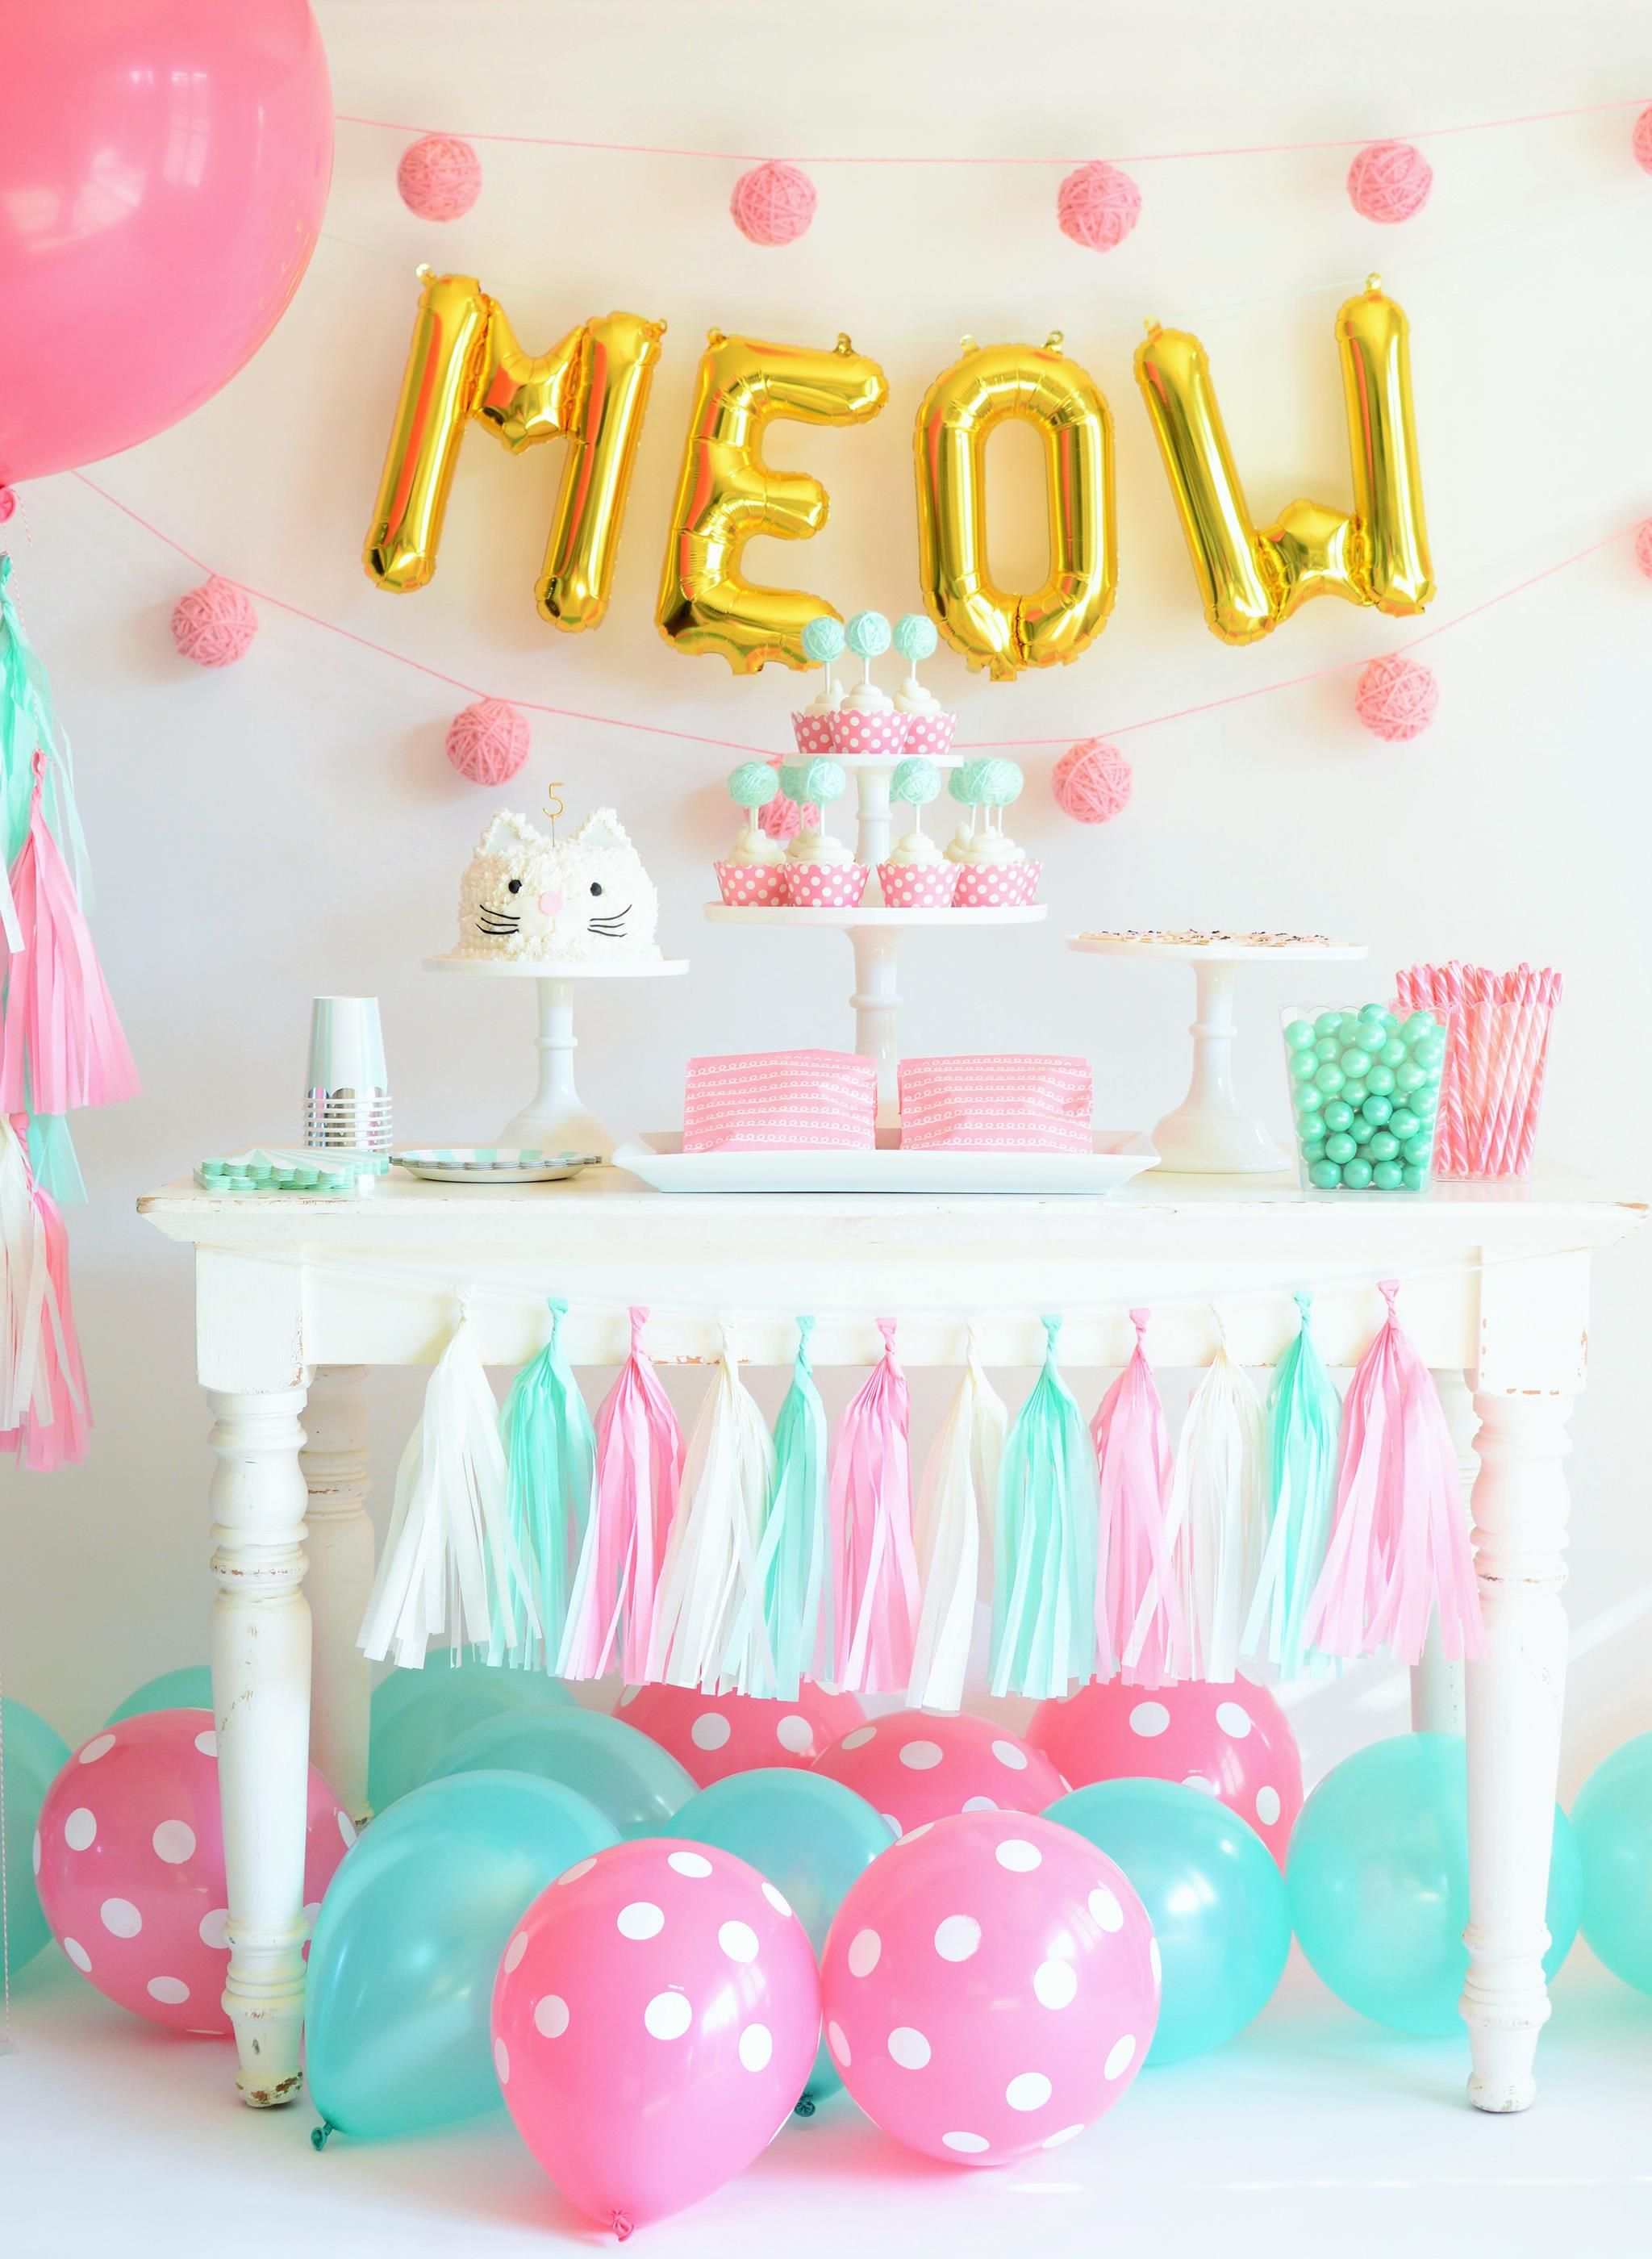 Birthday table decorations for girls - How To Throw The Purr Fect Kitten Party